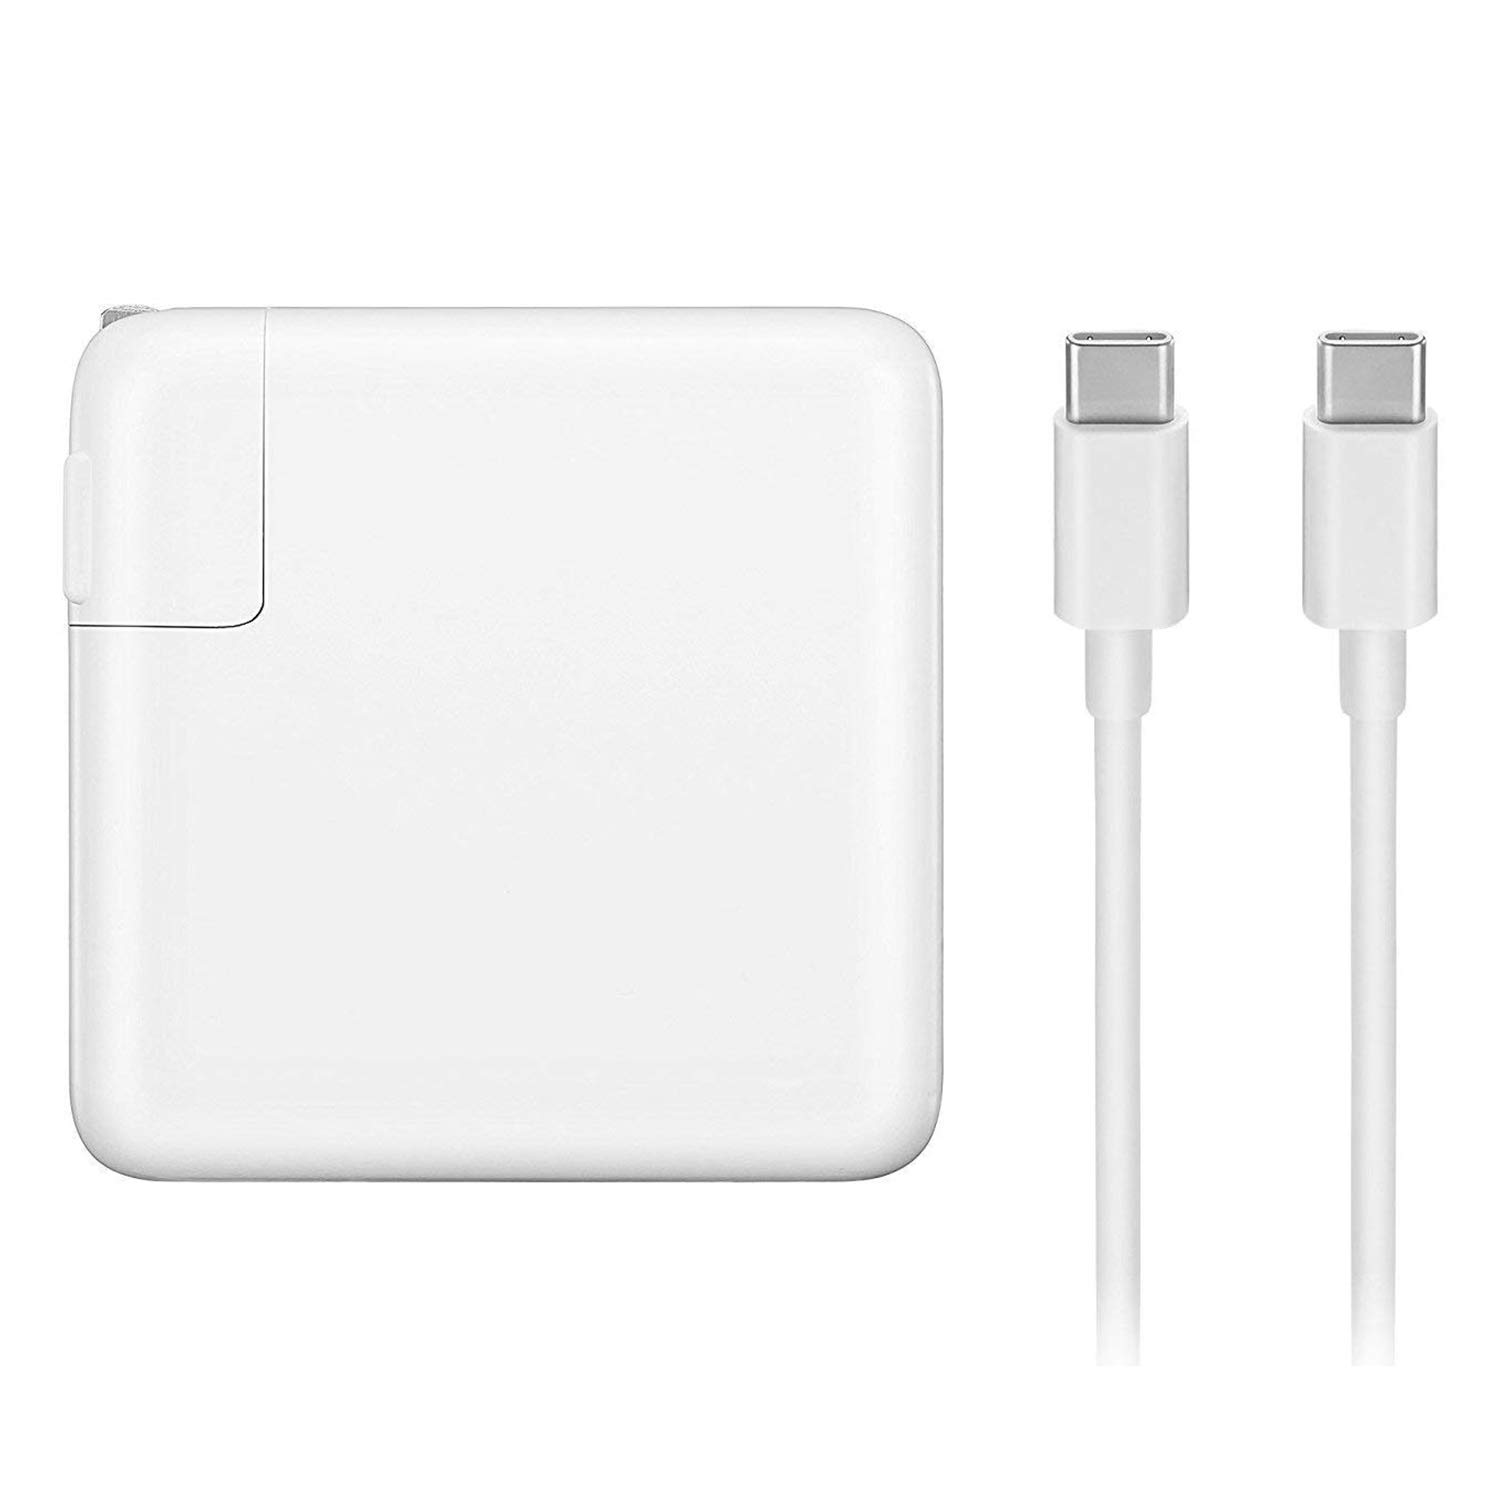 Vanfast USB-C Charger with 87W Power Delivery 3.0 Port,Replacement for MacBook Pro with 13'' 15'' After 2016 and Mac Book Air 2018,Compatible with Samsung,Nexus,enovo,ASUS,Acer,Dell USB-C Port